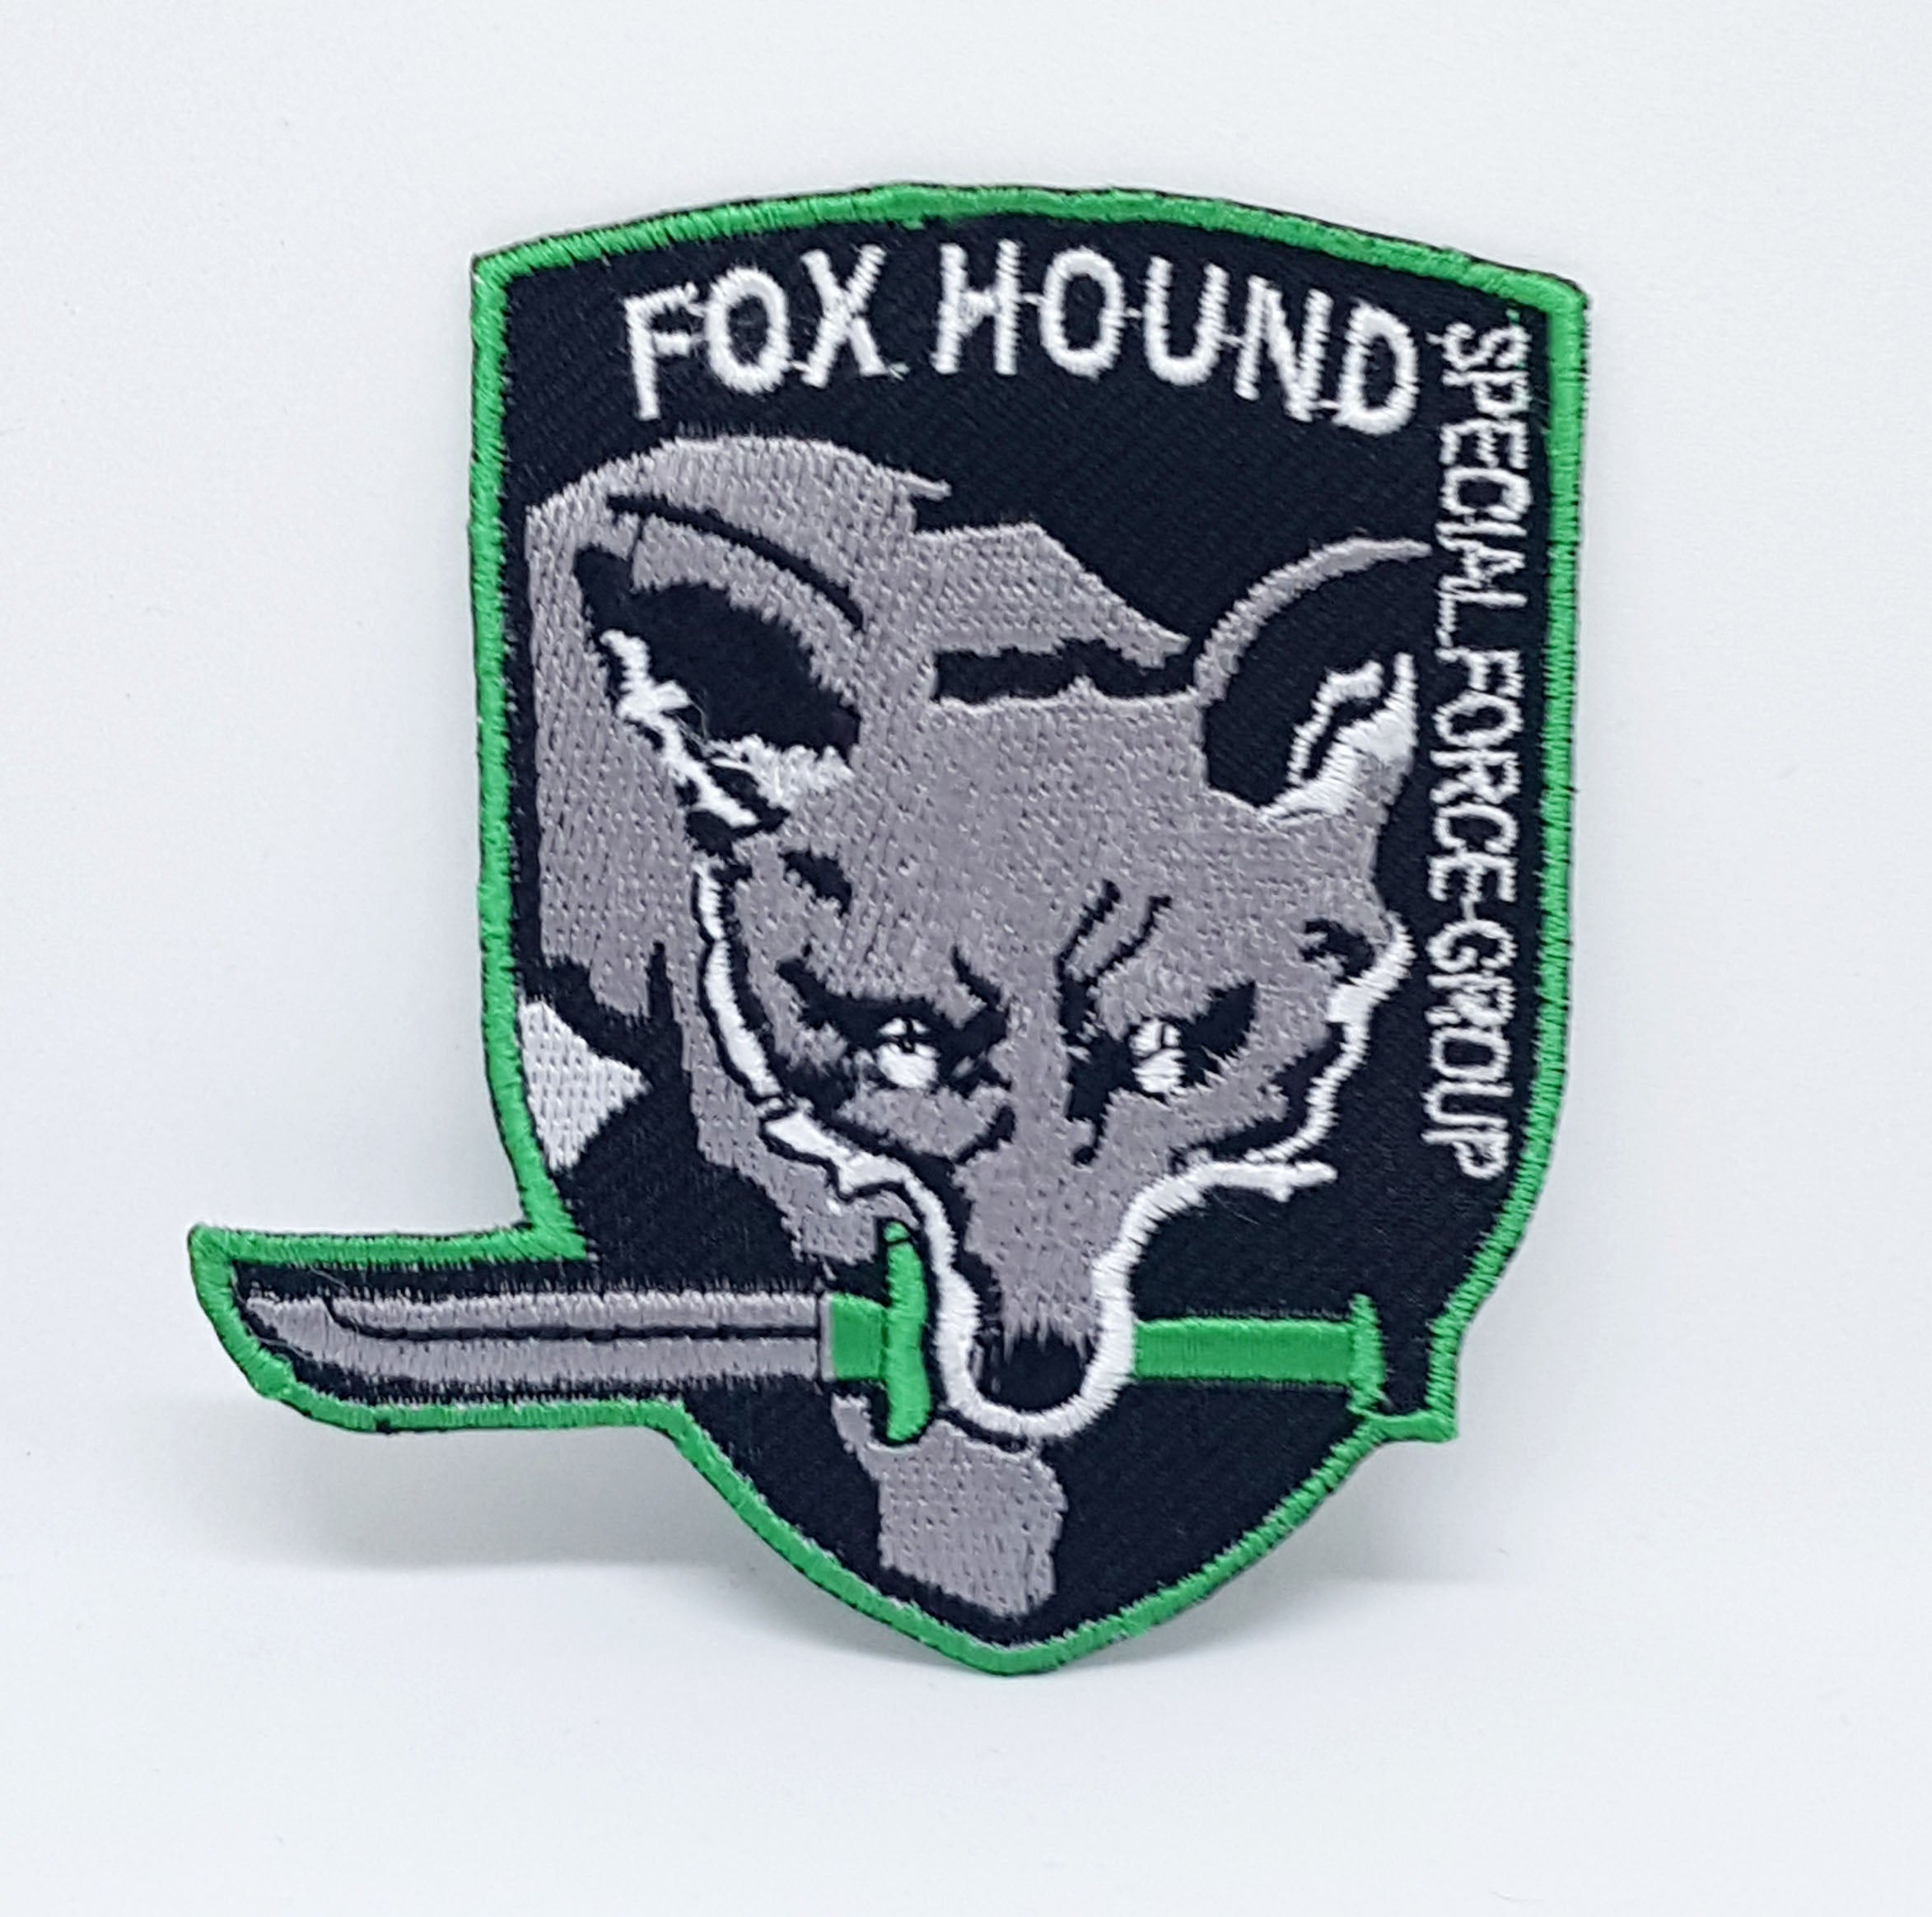 Metal Gear Fox Hound Special Force Iron/Sew on Embroidered Patch